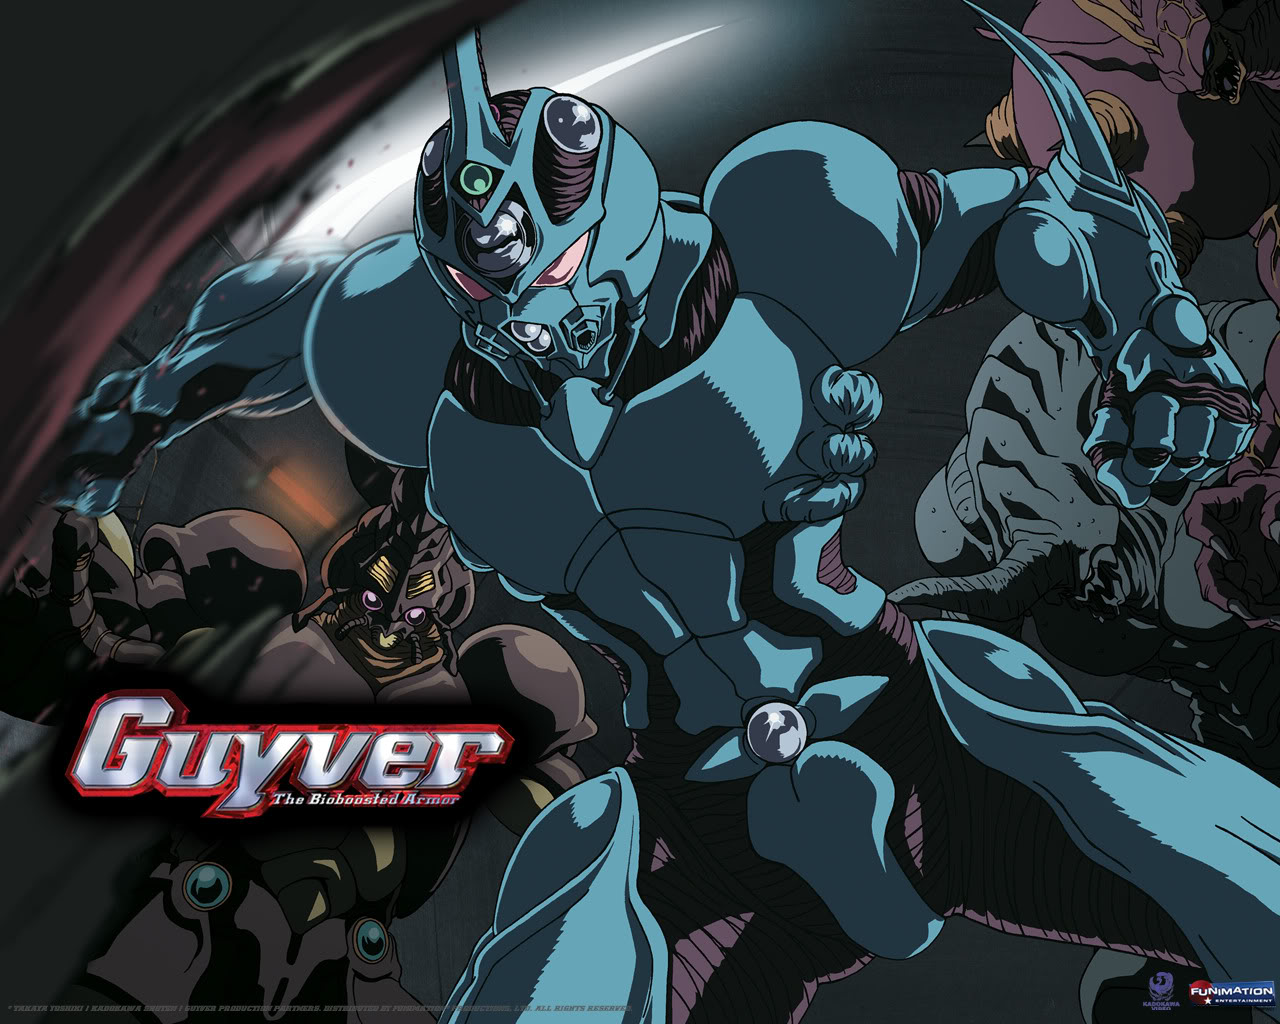 Guyver The Bioboosted Armor Backgrounds on Wallpapers Vista